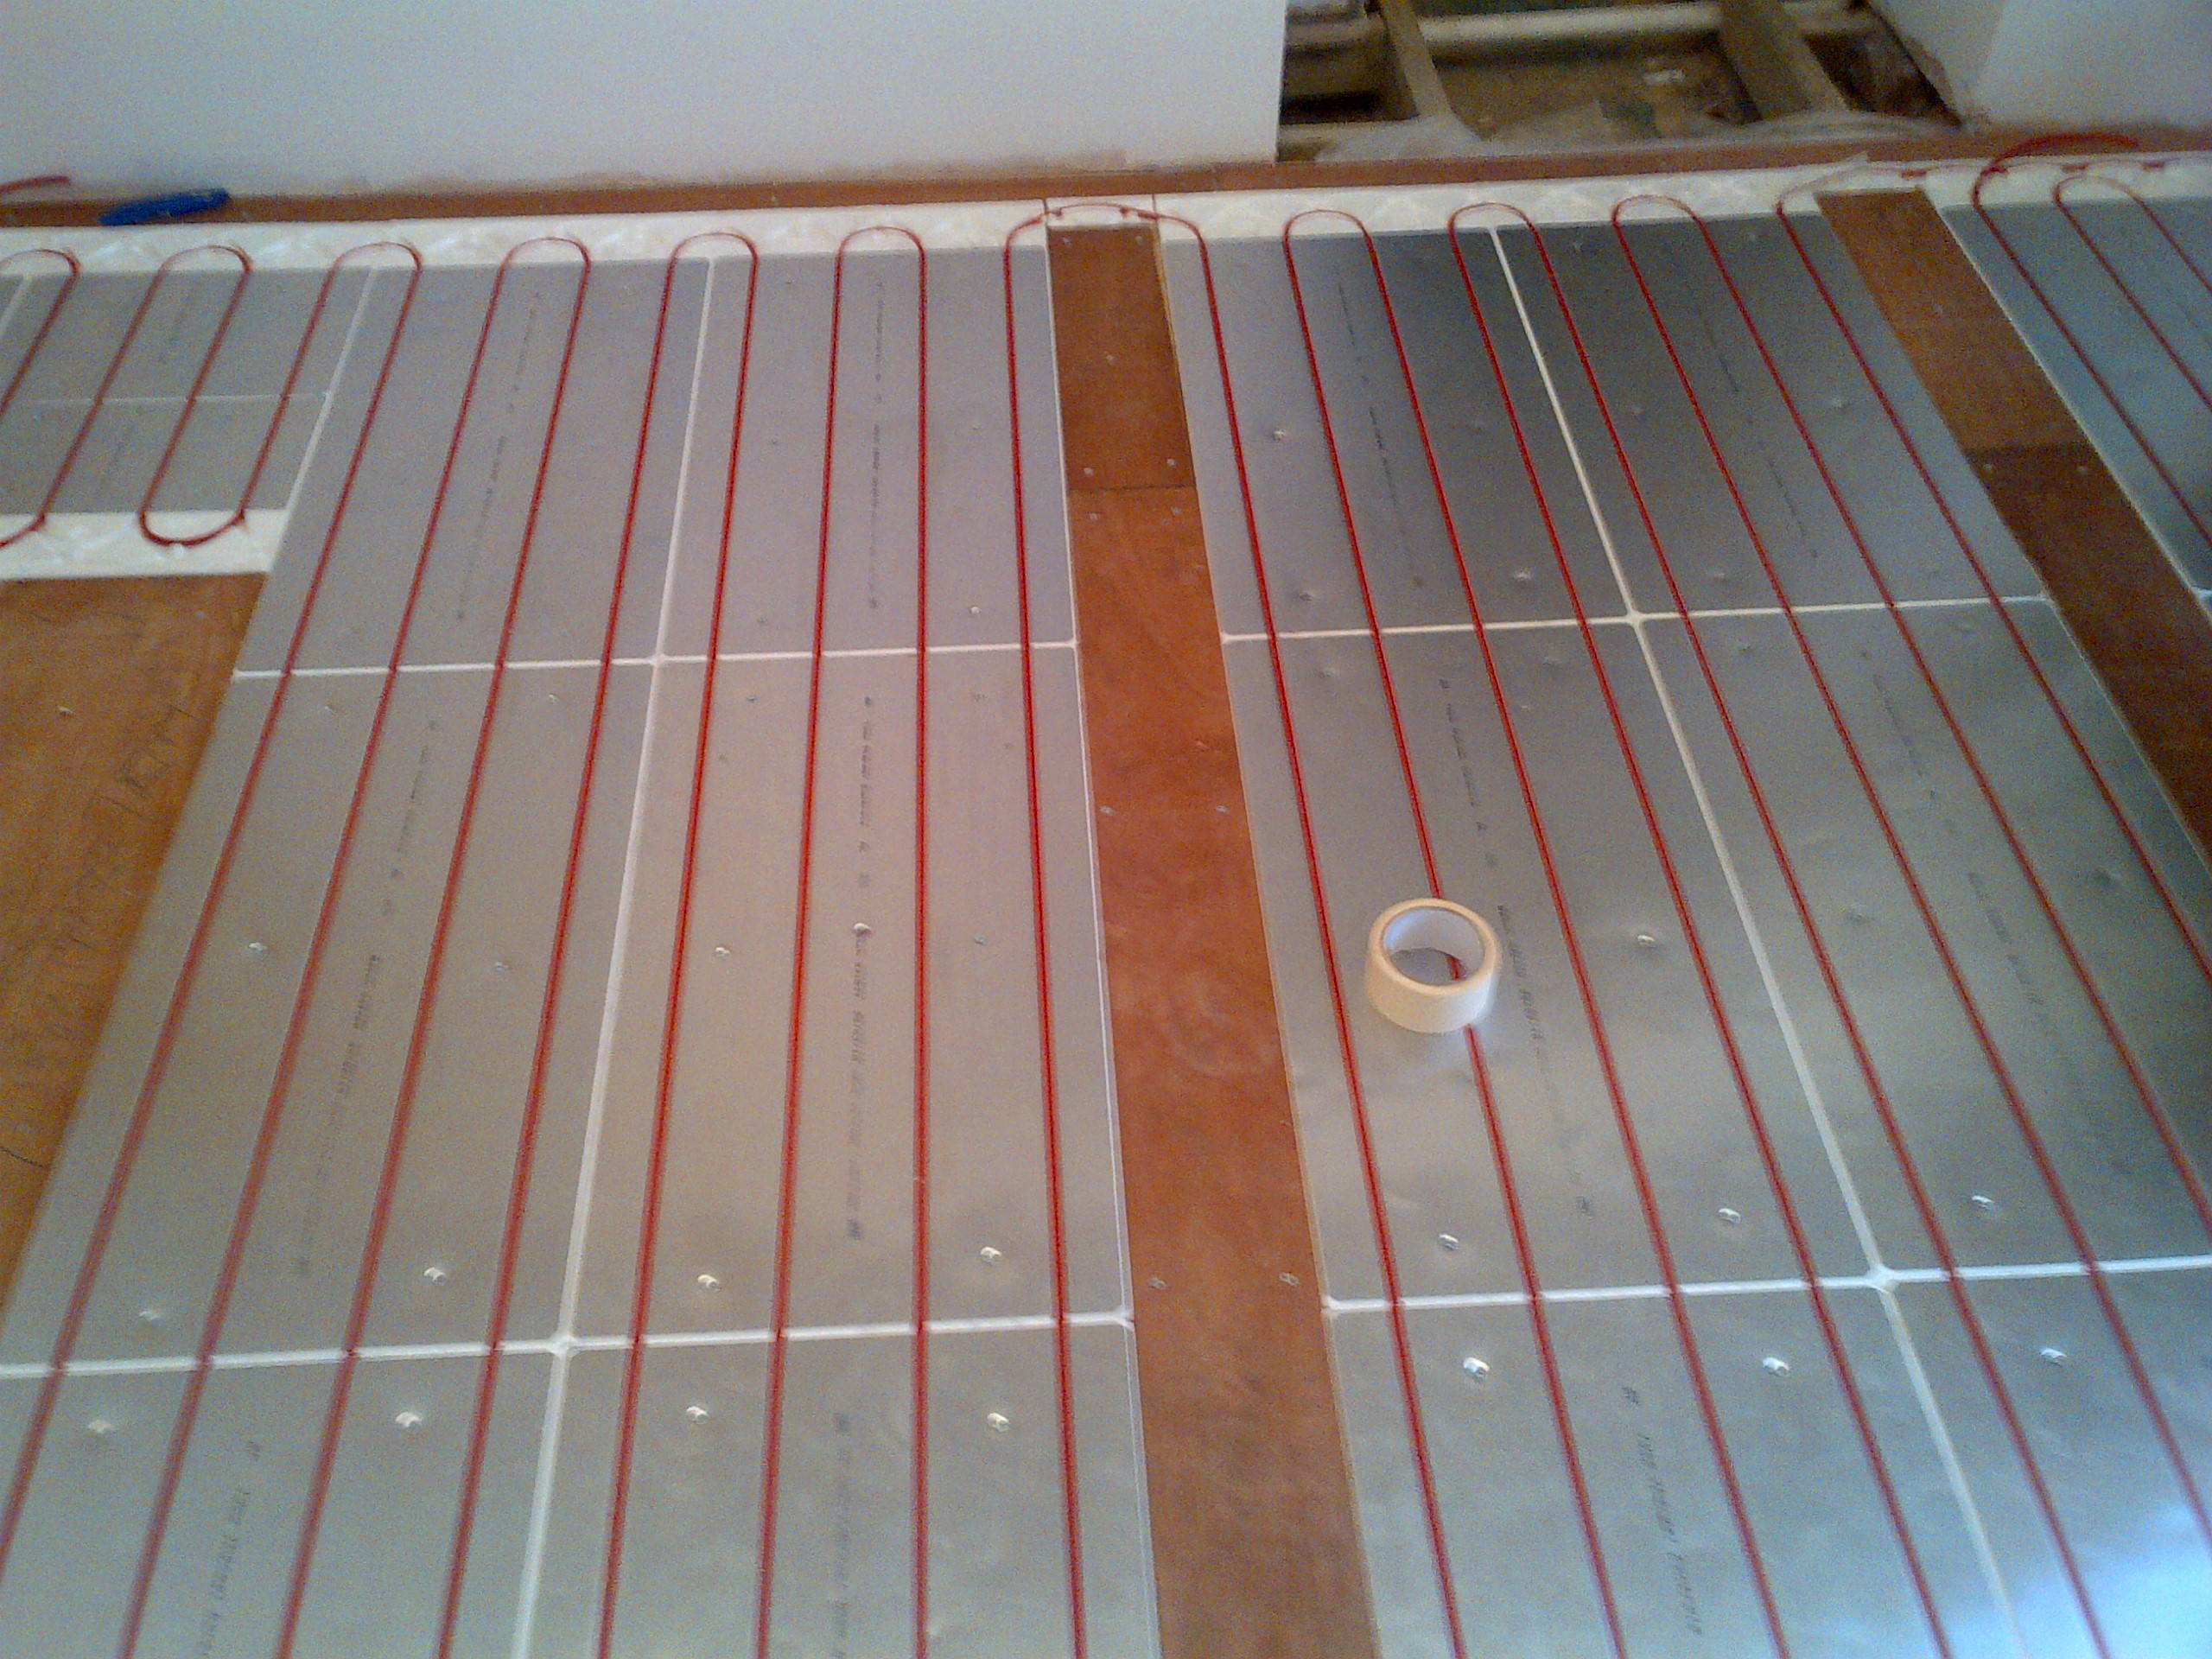 Electric Underfloor Heating Water Underfloor Heating Under Floor